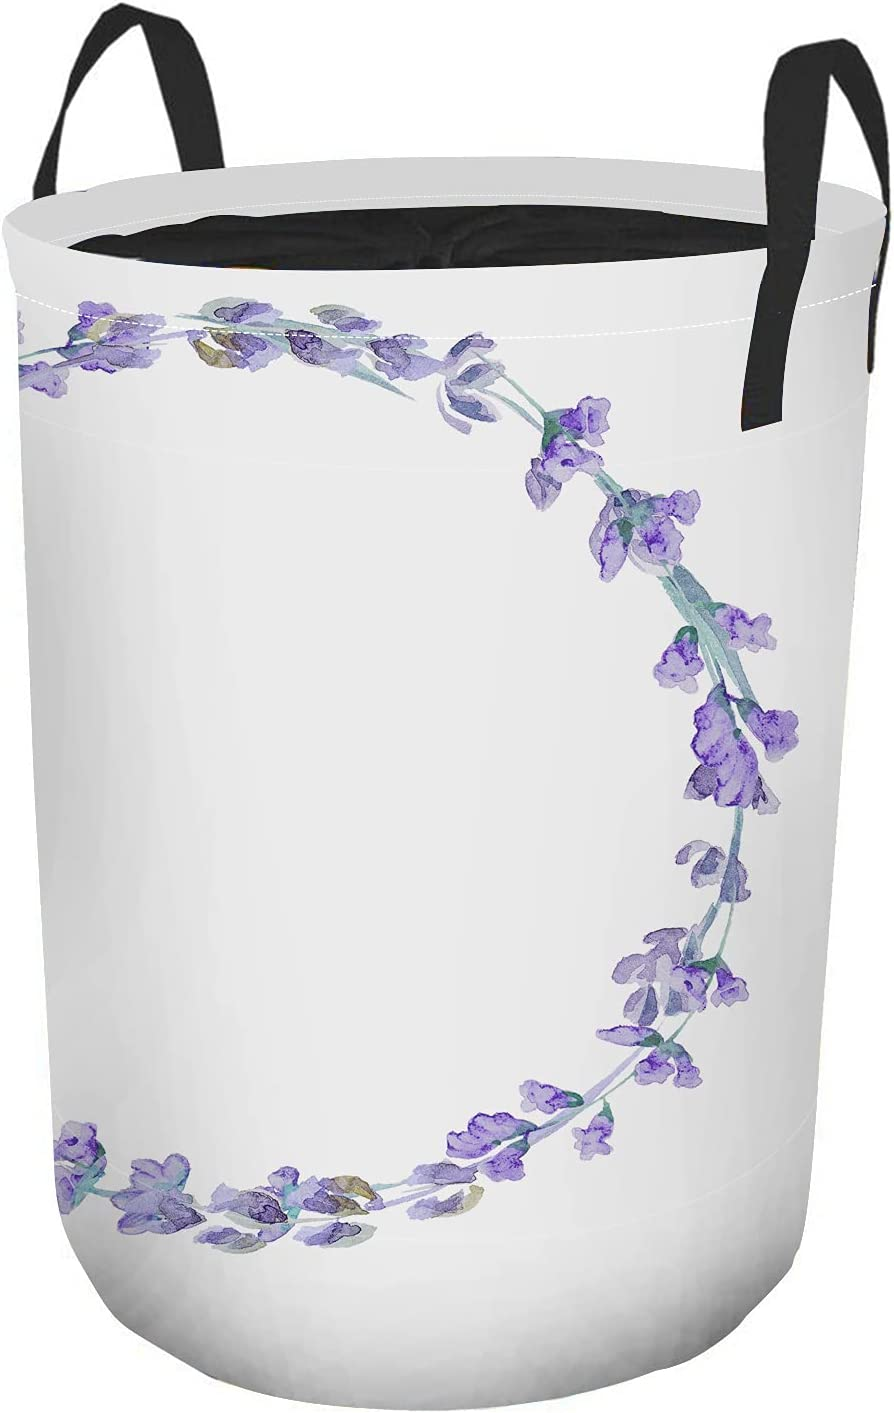 Beabes Lavender Wreath Super beauty product restock quality top Laundry Max 62% OFF Cloth Hampers Beautiful Purple La